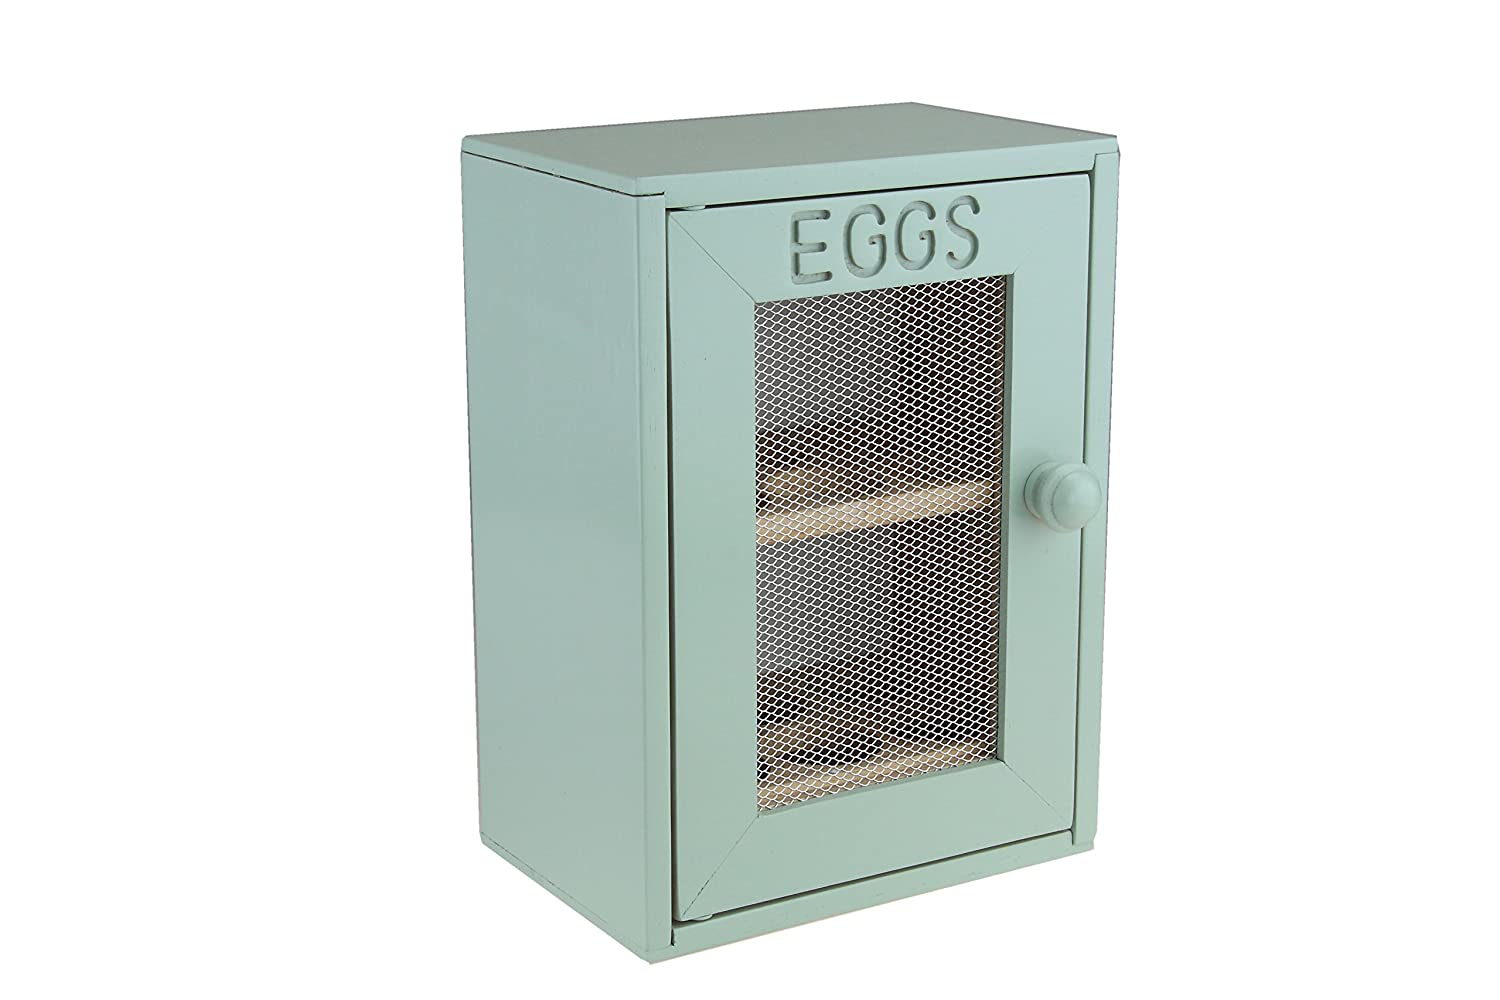 Apollo Wood Egg Cabinet, Mint/Green: Amazon.co.uk: Kitchen & Home